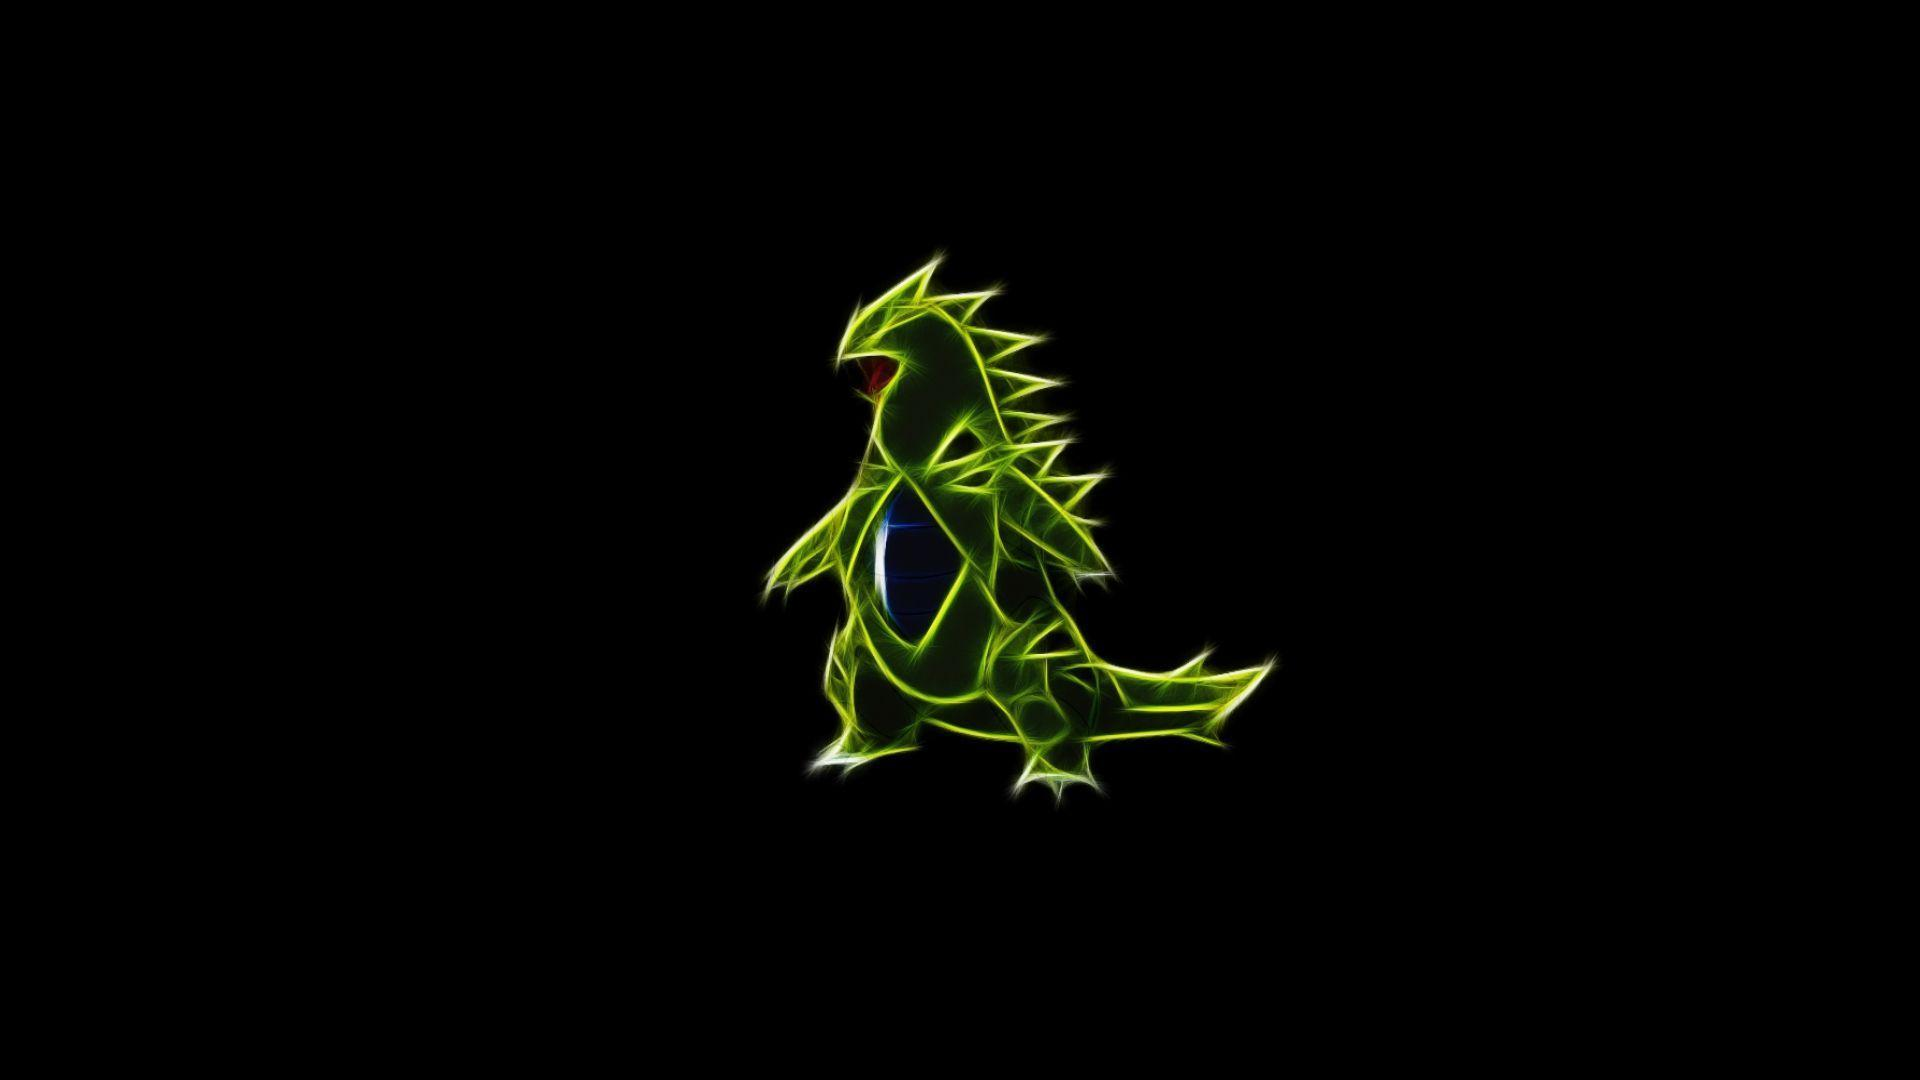 Tyranitar Wallpapers - Wallpaper Cave